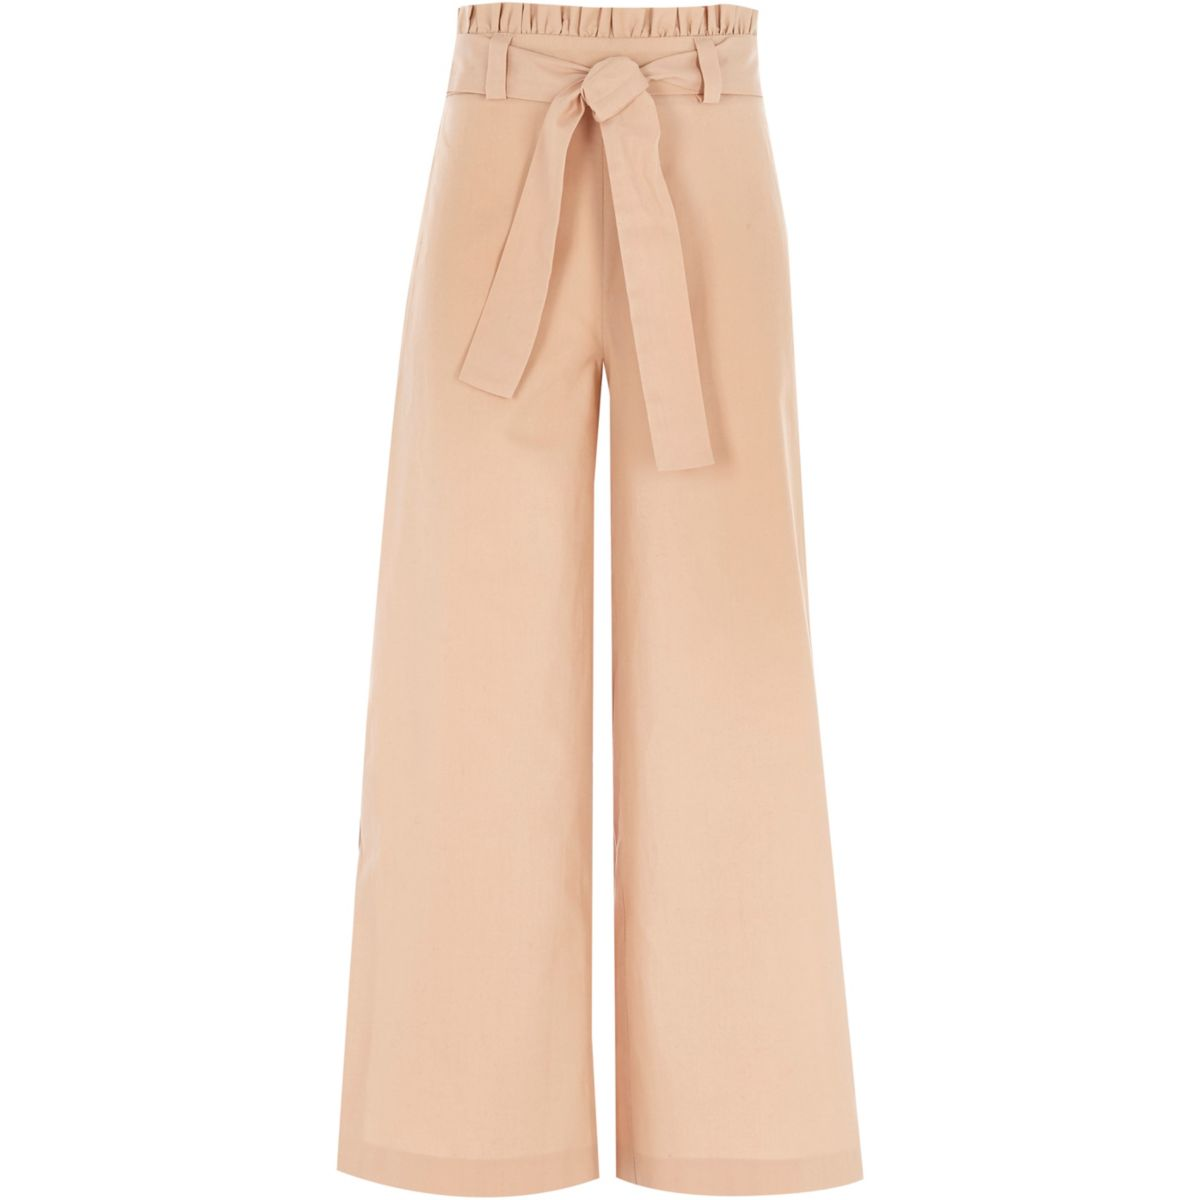 Wide-legged trousers in beige might seem a little bit boring, but you can always liven them up with other pieces to add detail and colour to your look. Beige trousers as a classic colour to wear, and, will pretty much go with anything you can throw at it.